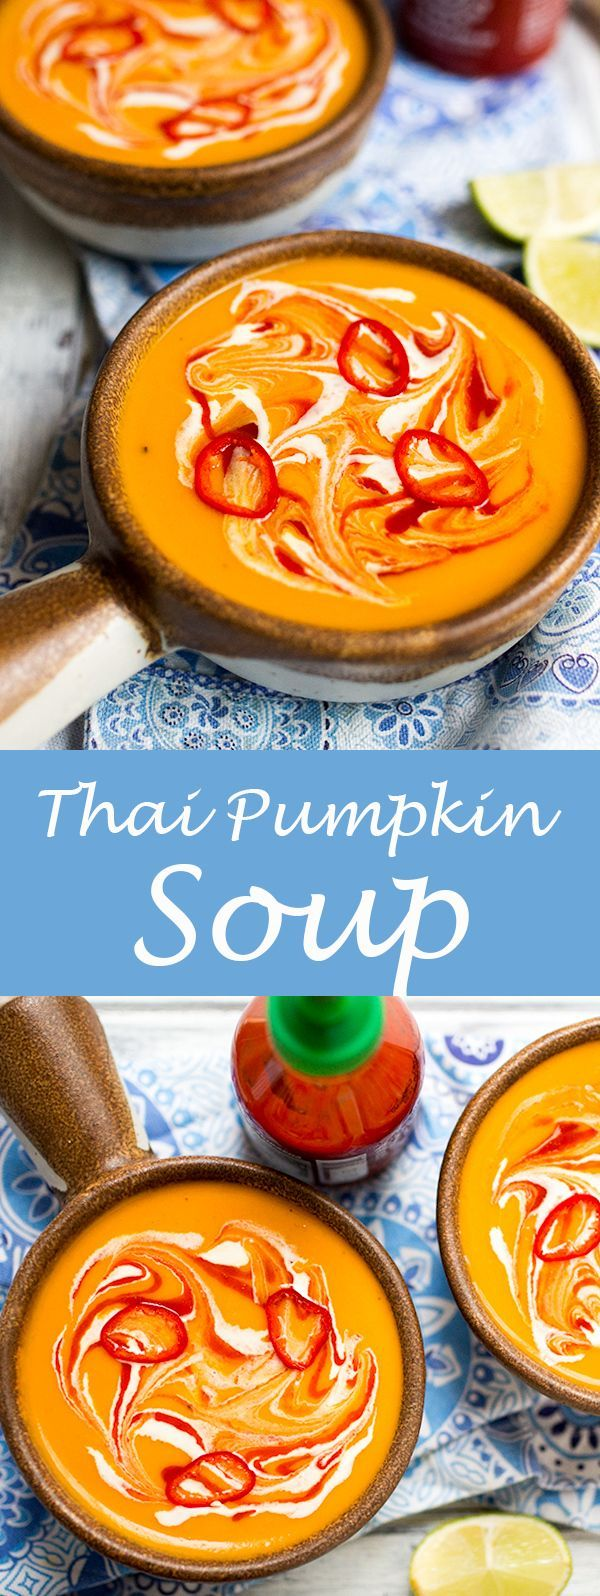 Thai Pumpkin Soup - this soup seems like it would have a bit of a kick to it. Great lunch idea.